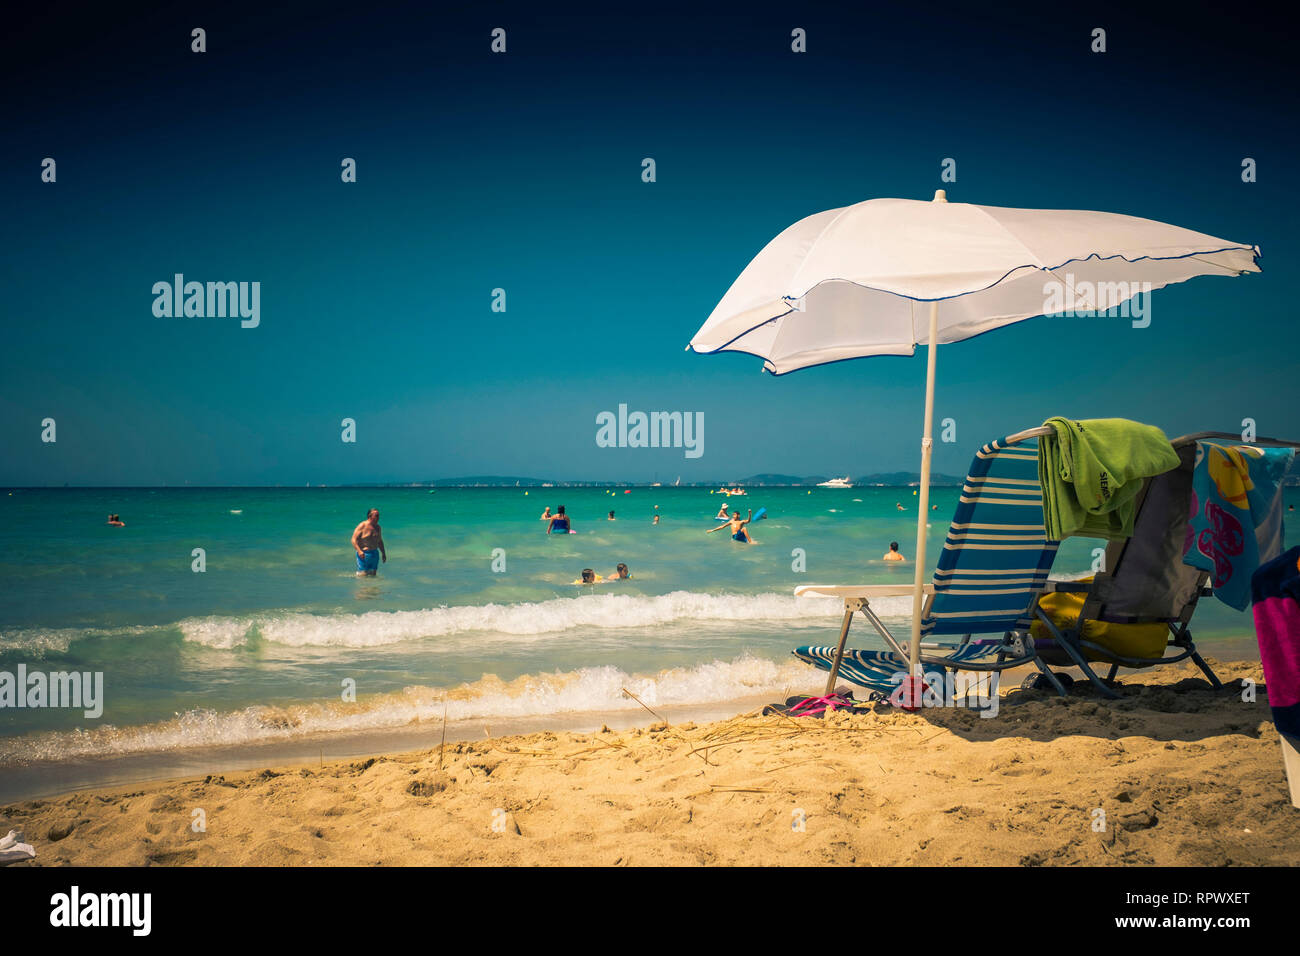 Lazy days on the beach. - Stock Image